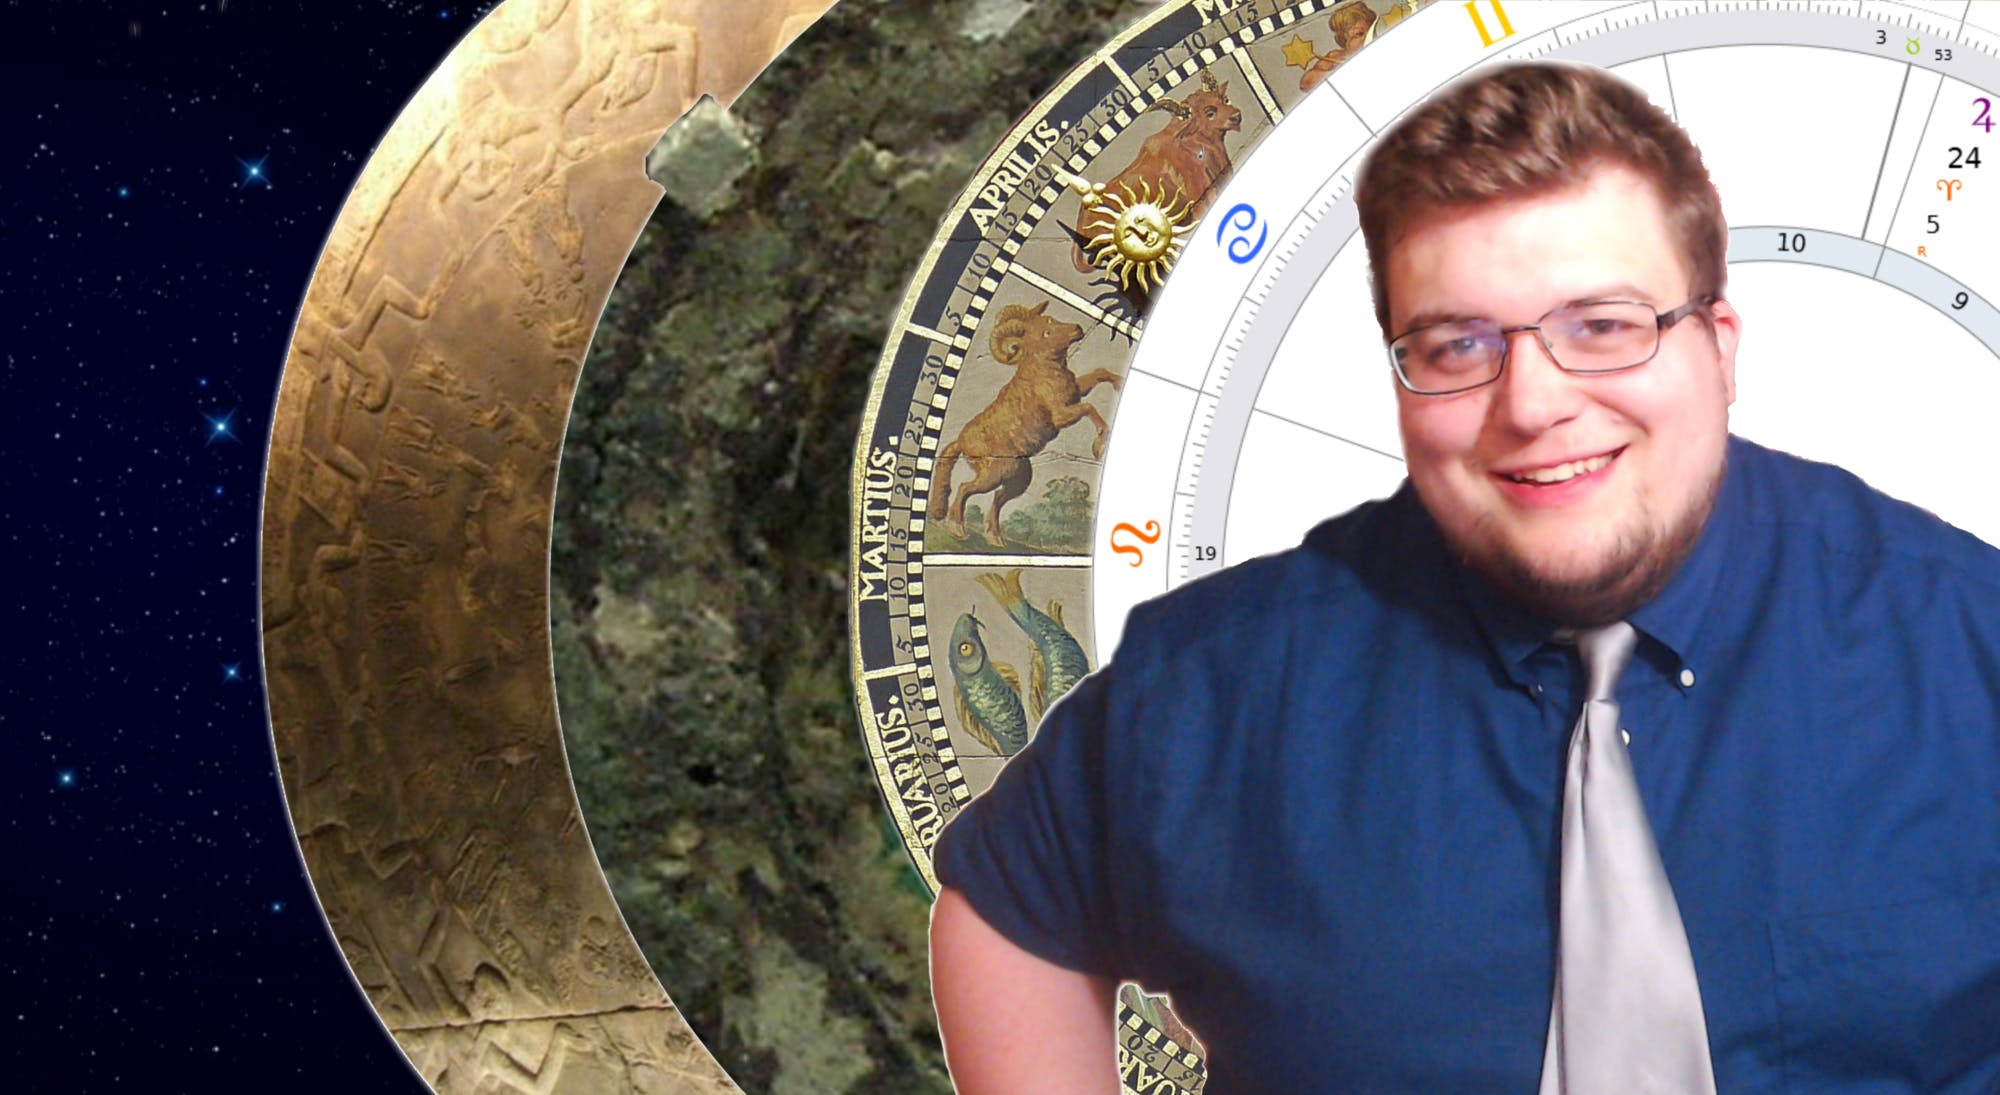 Photo of Patrick smiling with a close up of an astrology chart set as the background.